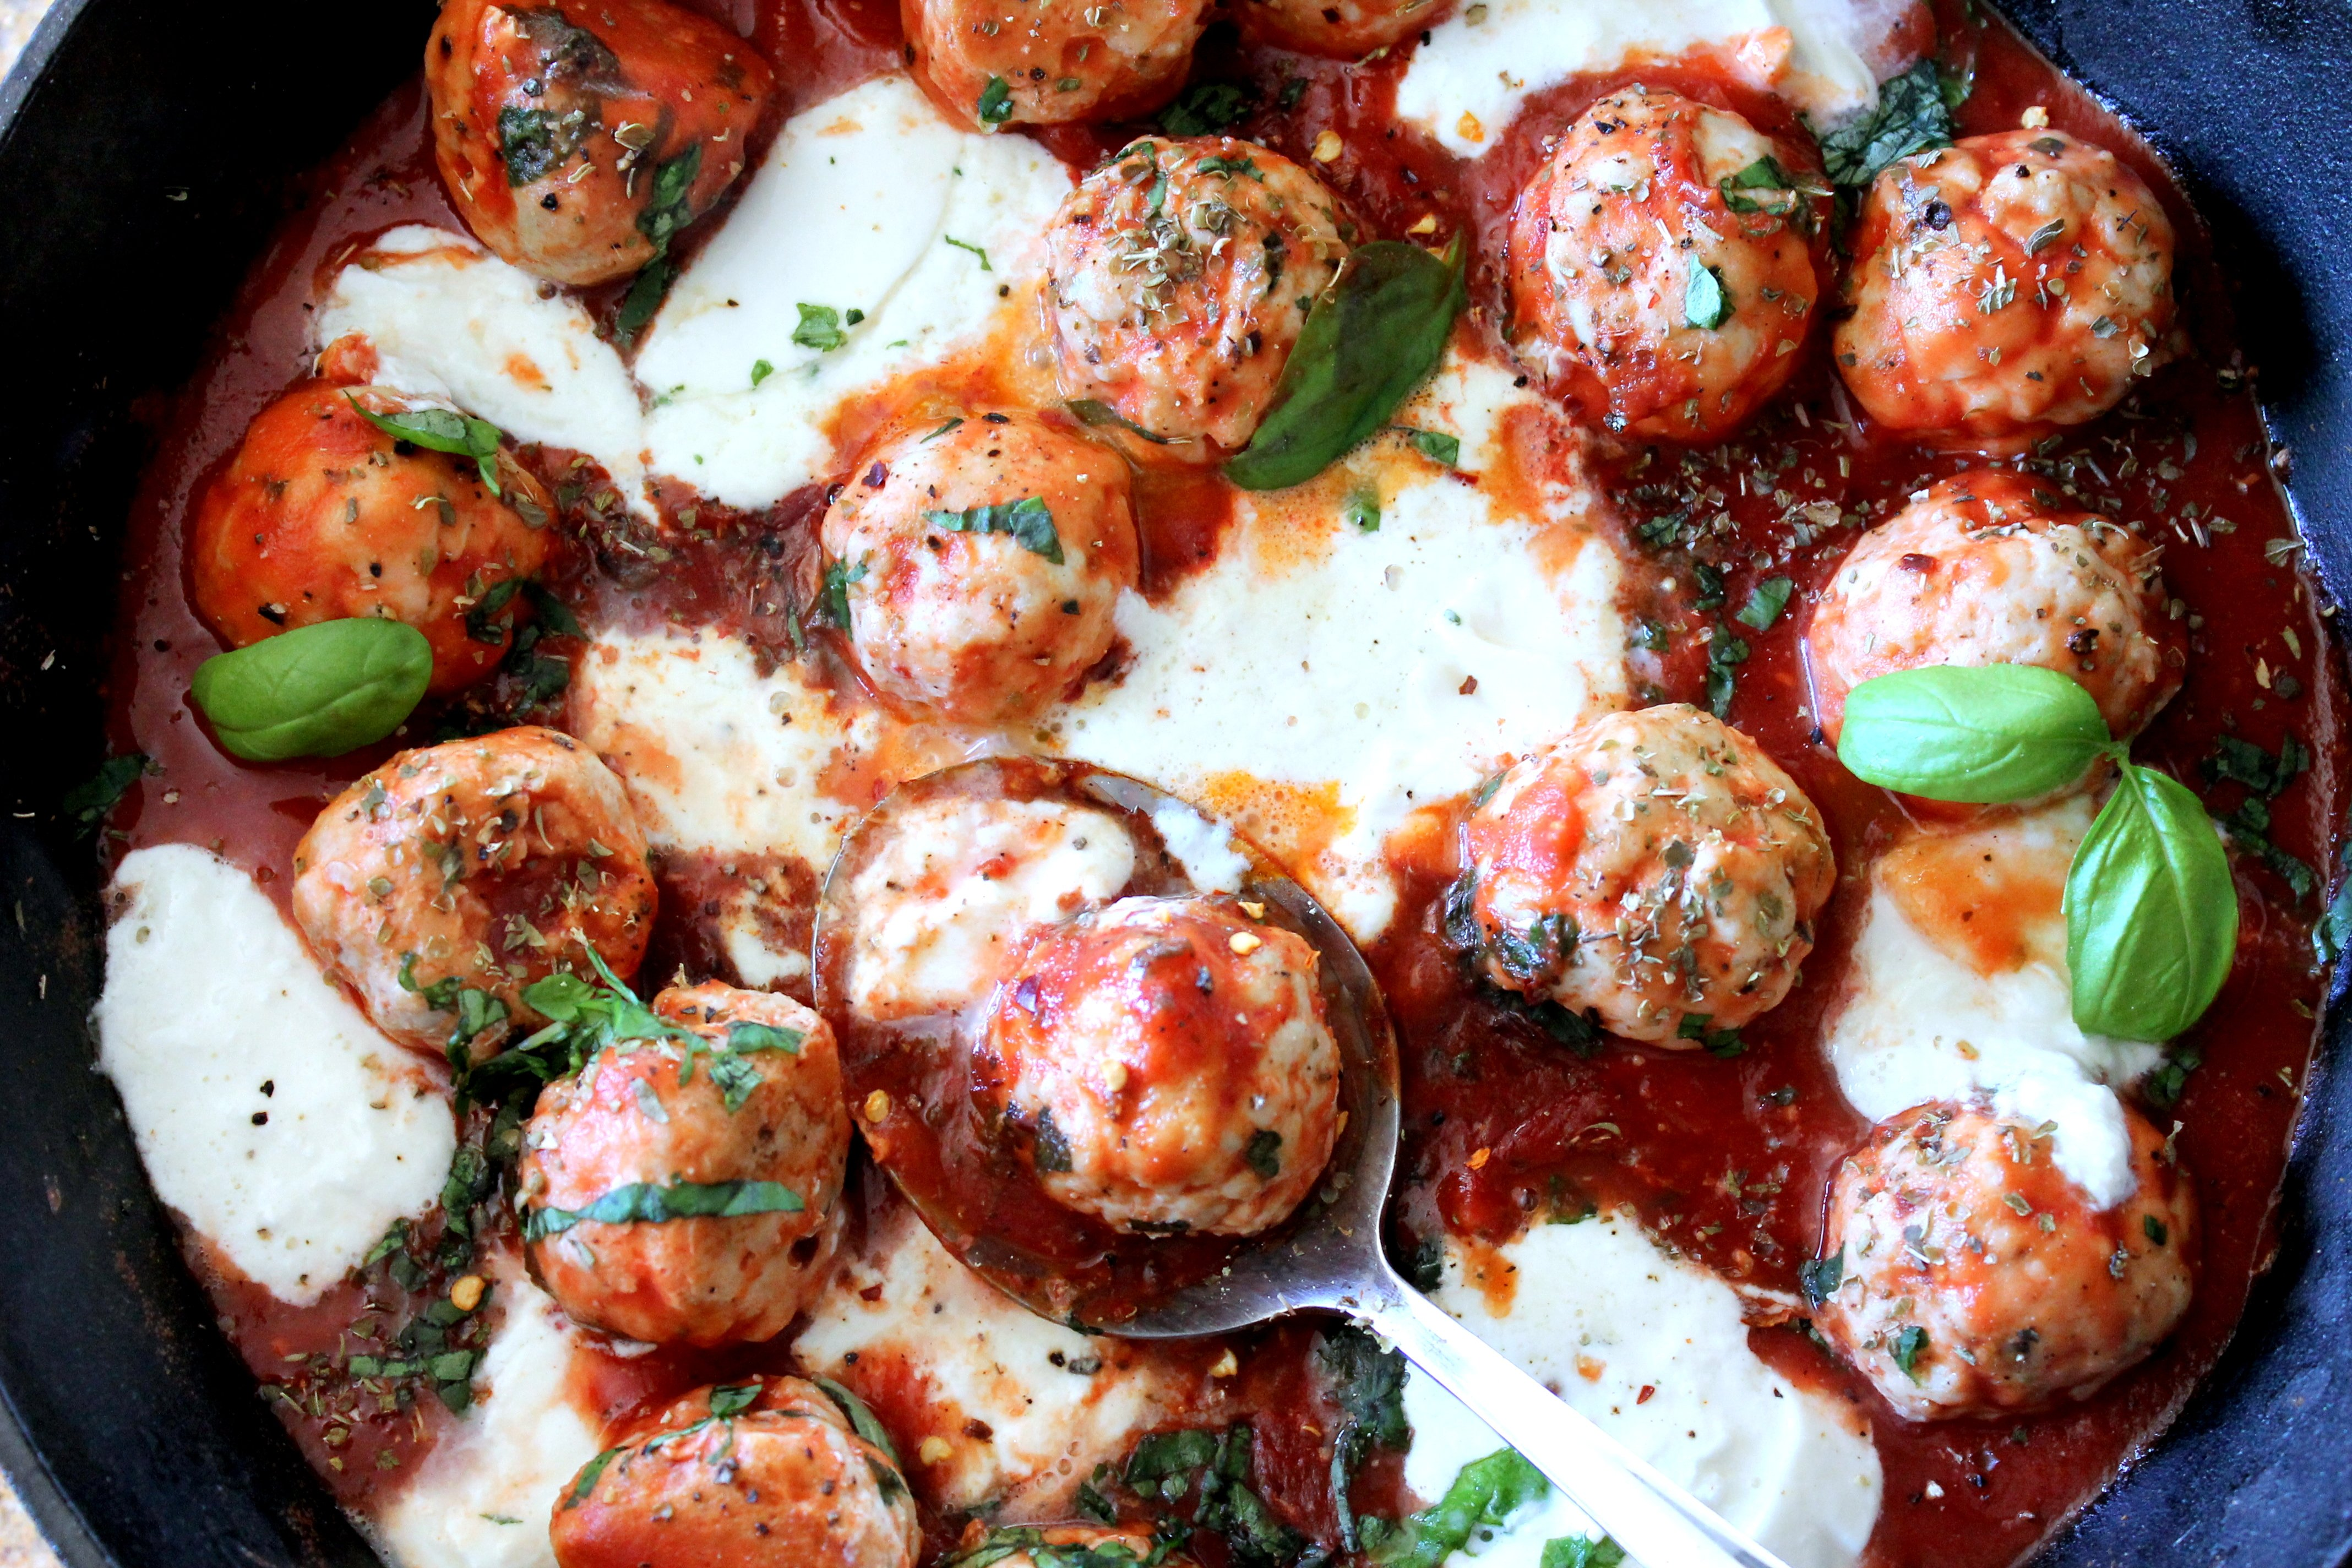 Pan of meatballs with red sauce and white cheese